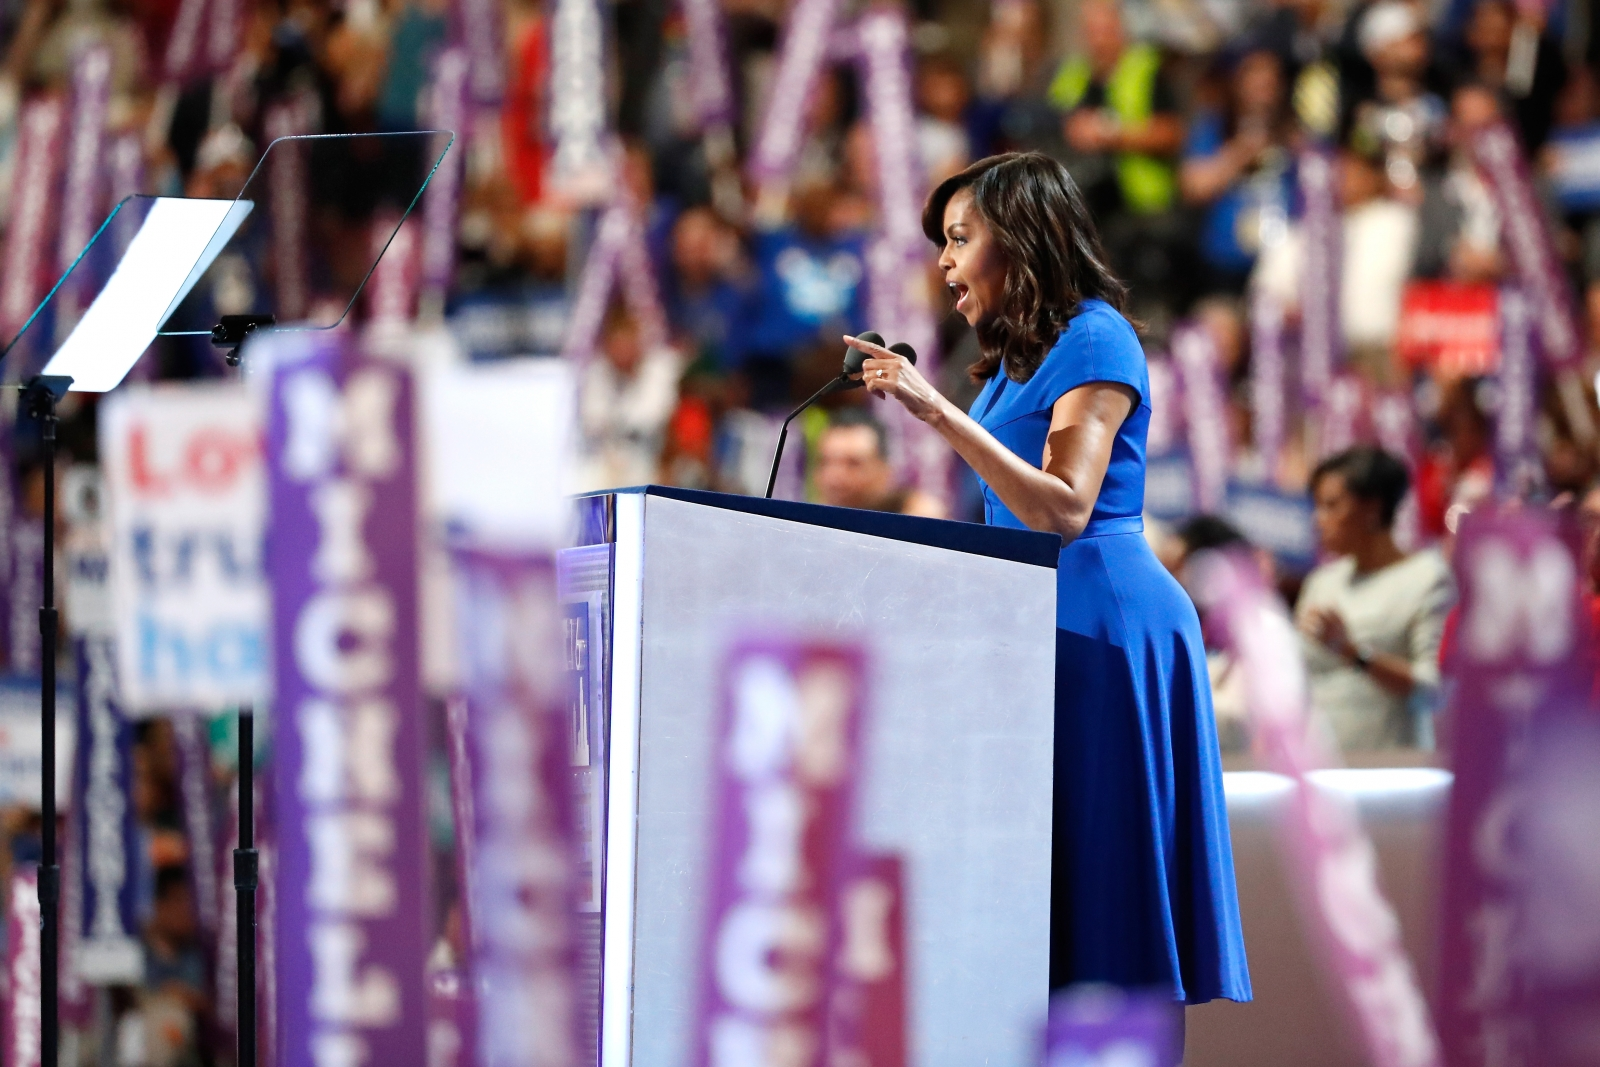 Michelle Obama at DNC